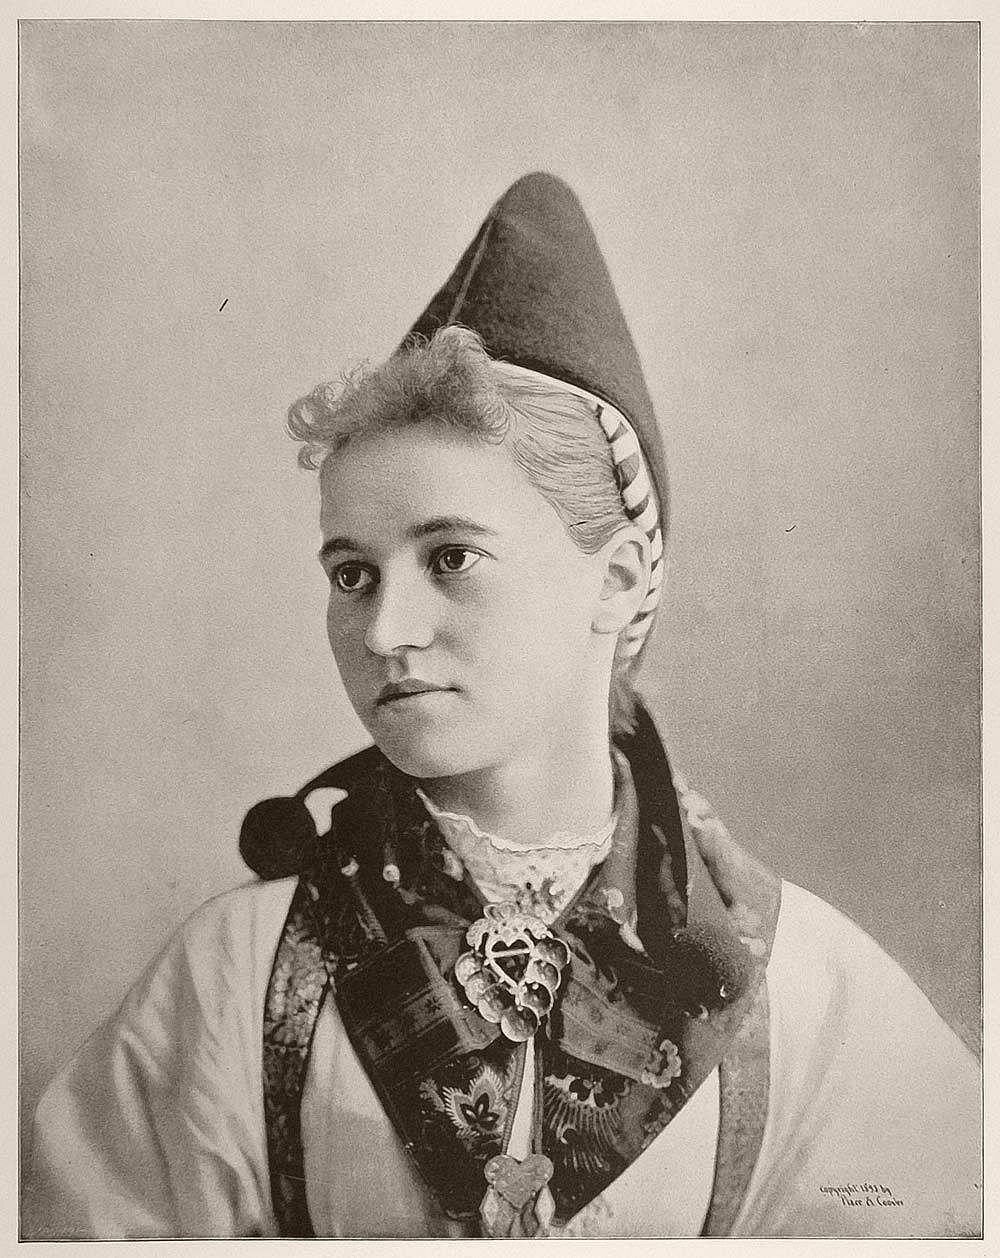 Margarette Olsen, a young Swedish peasant woman from Dalecarlia, Sweden.